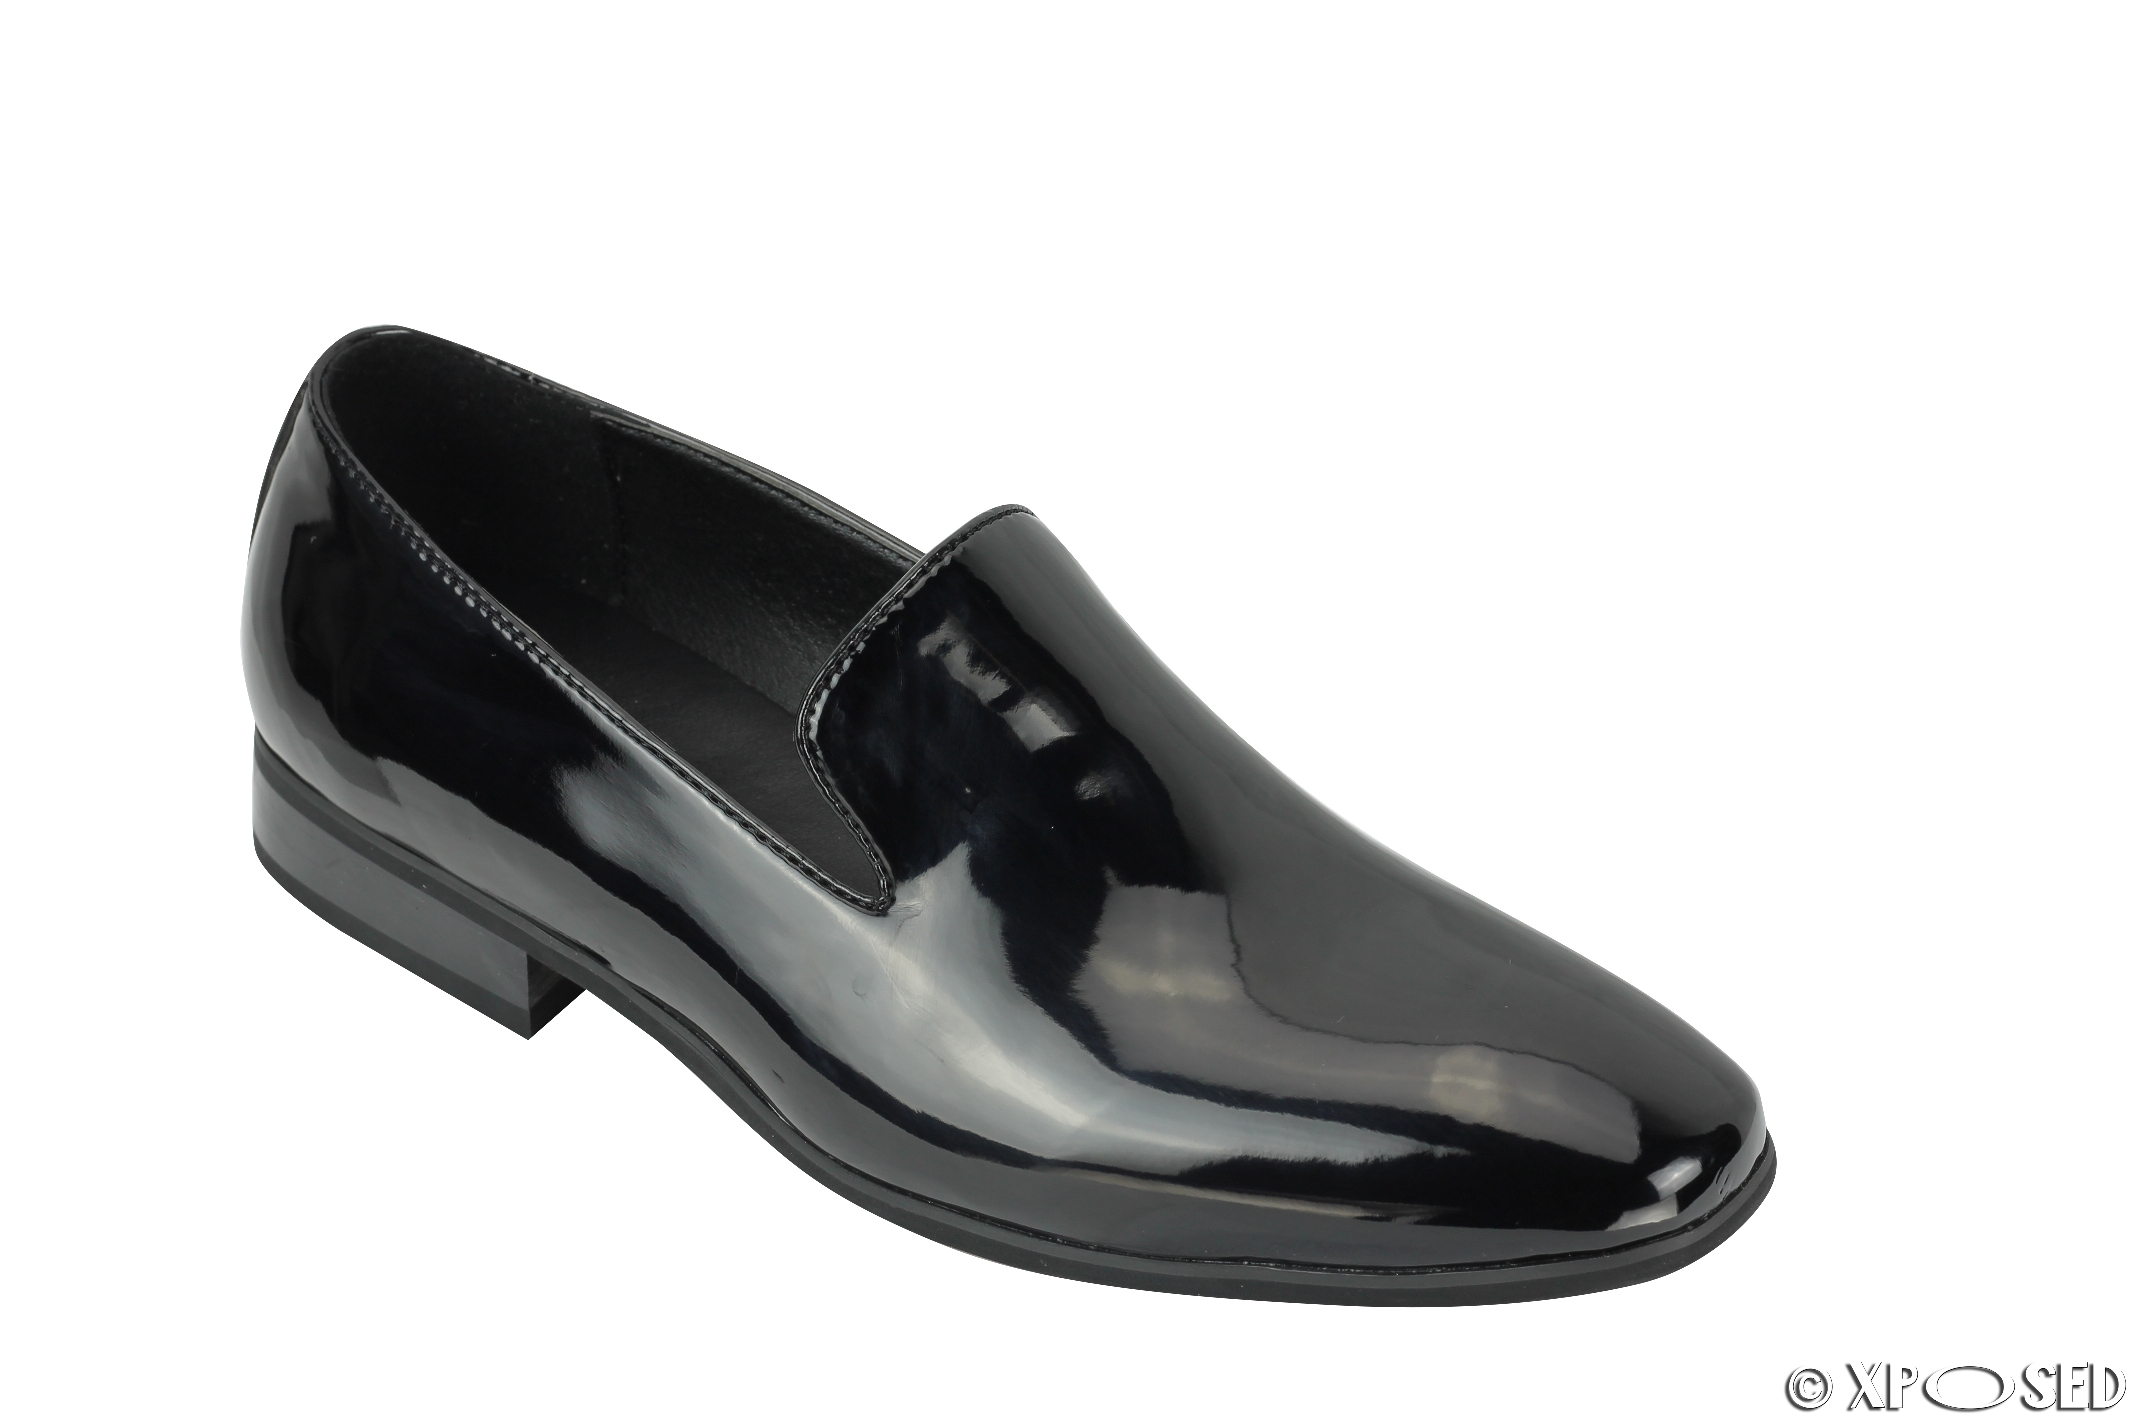 new mens loafers patent leather smart casual slip on